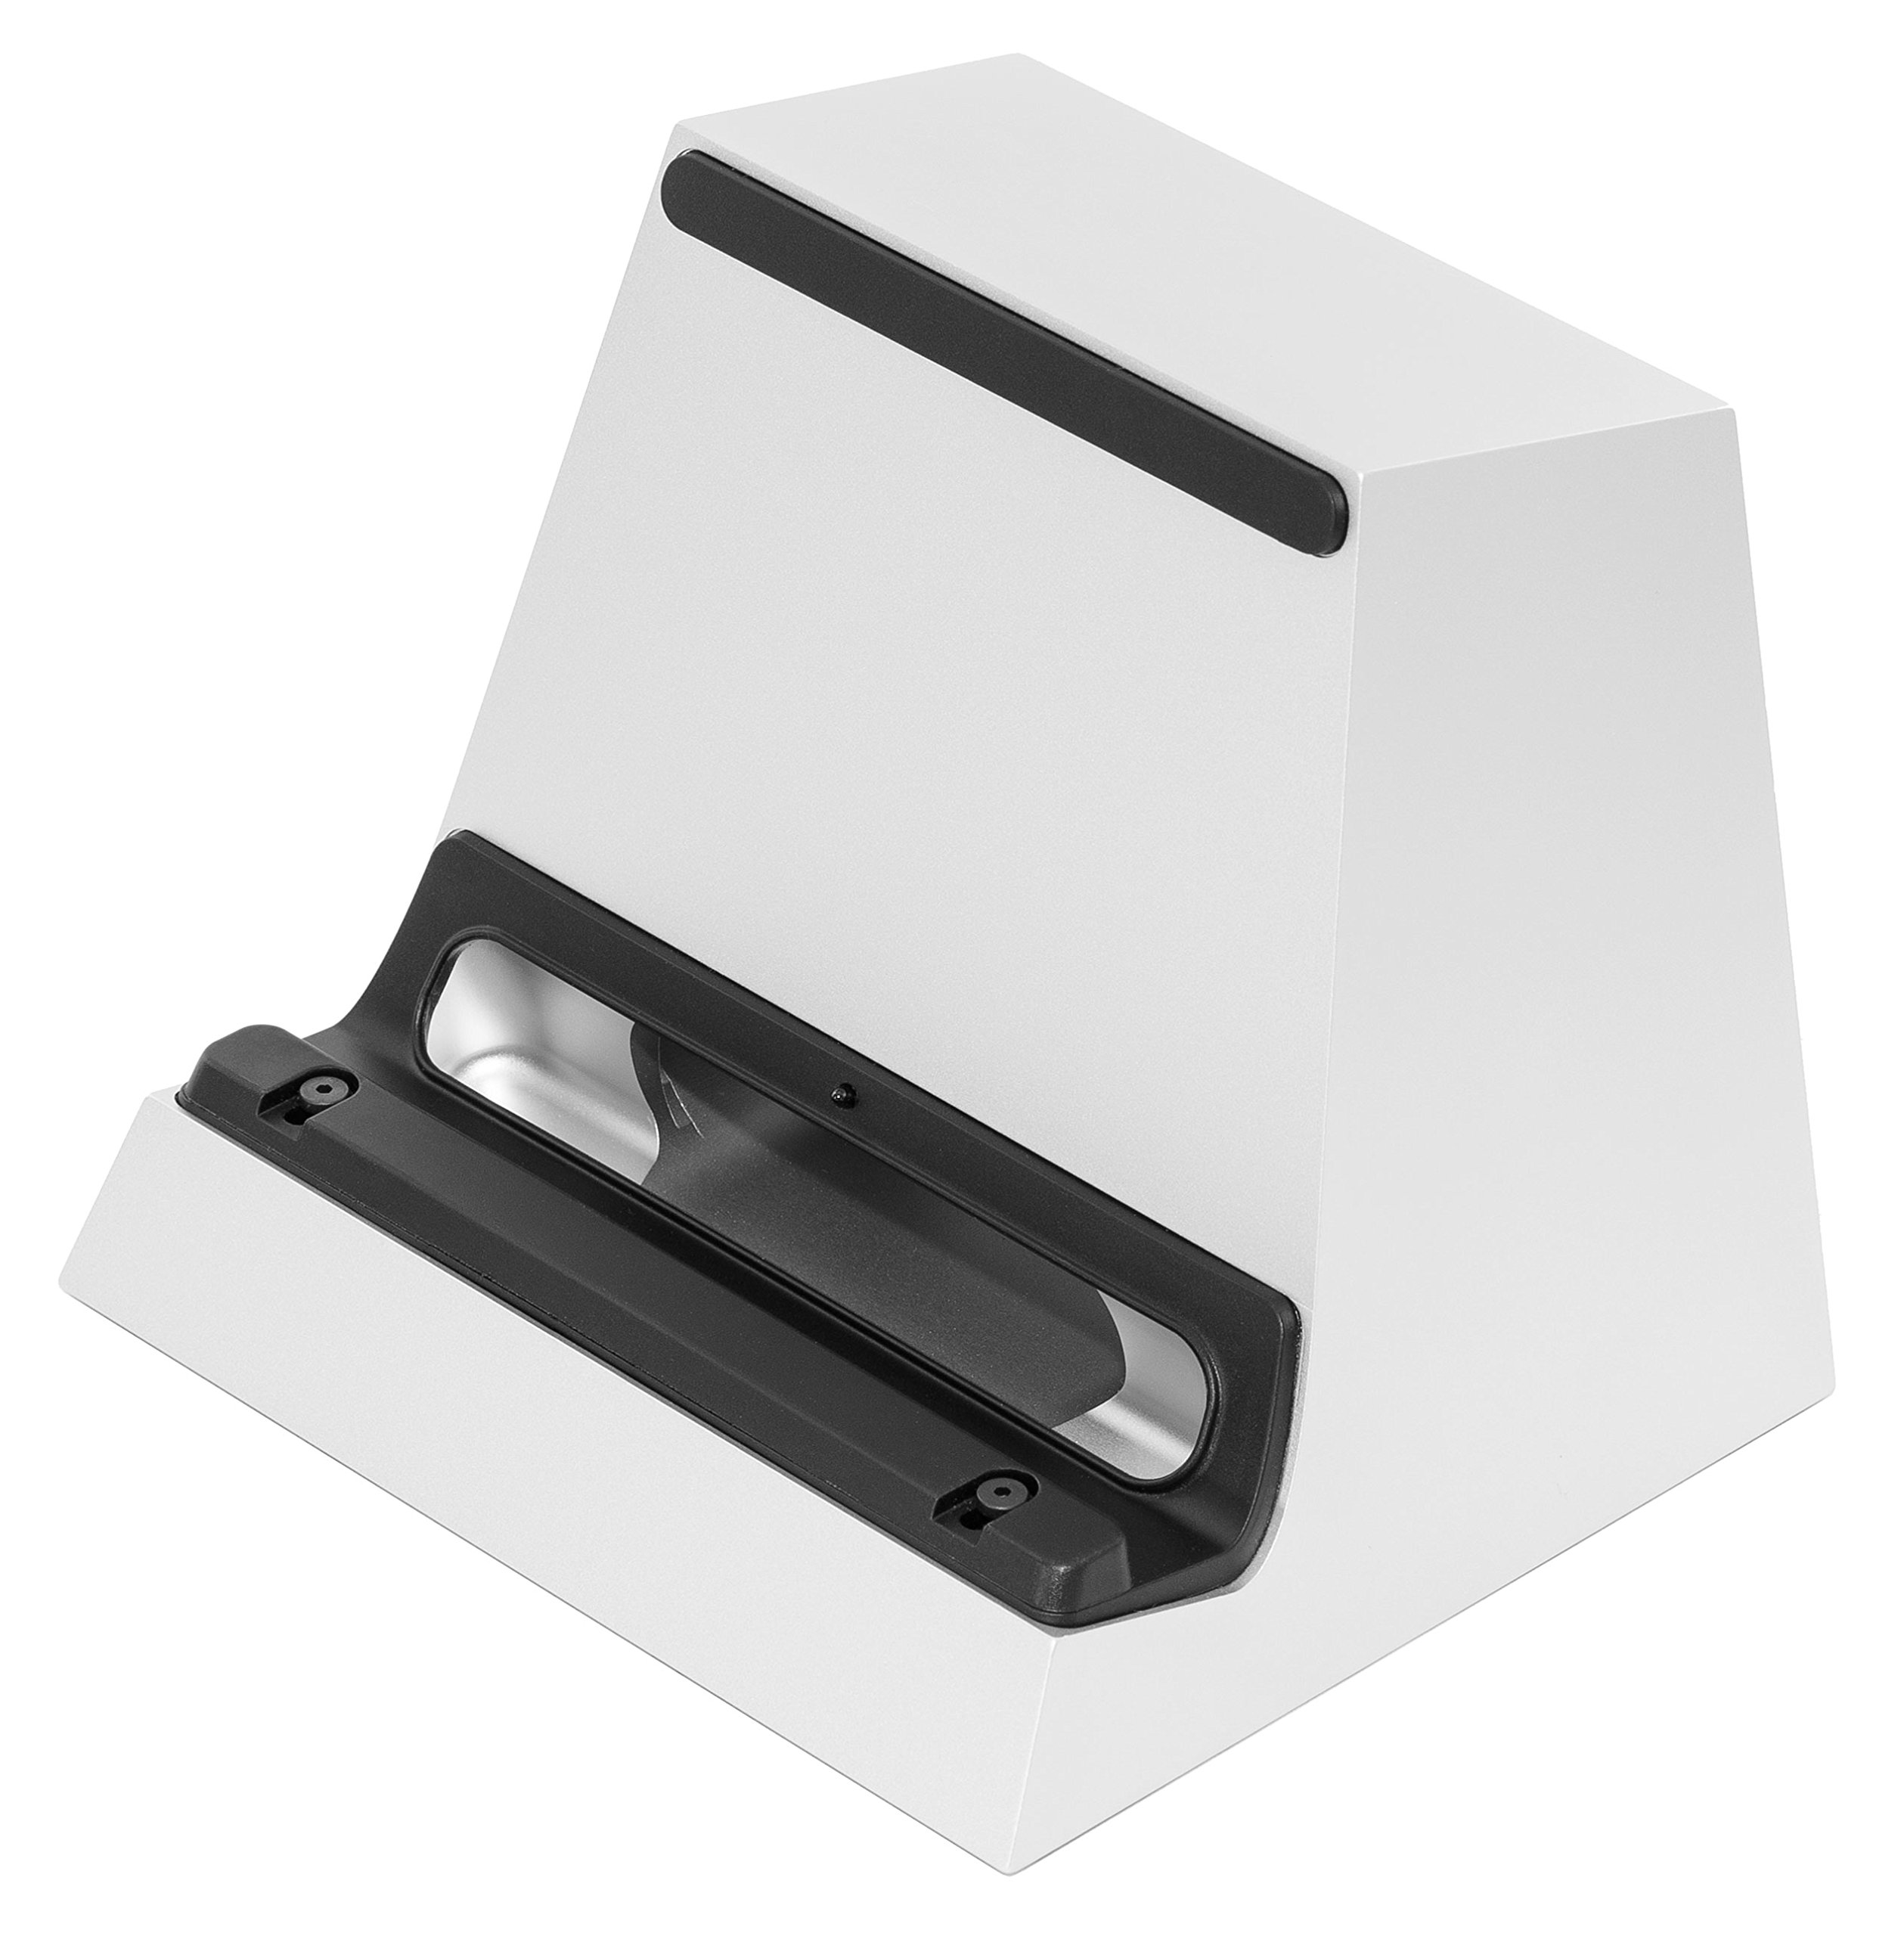 SVALT D2 High-Performance Cooling Dock for Apple Retina MacBook Pro and MacBook Air laptops by SVALT (Image #6)